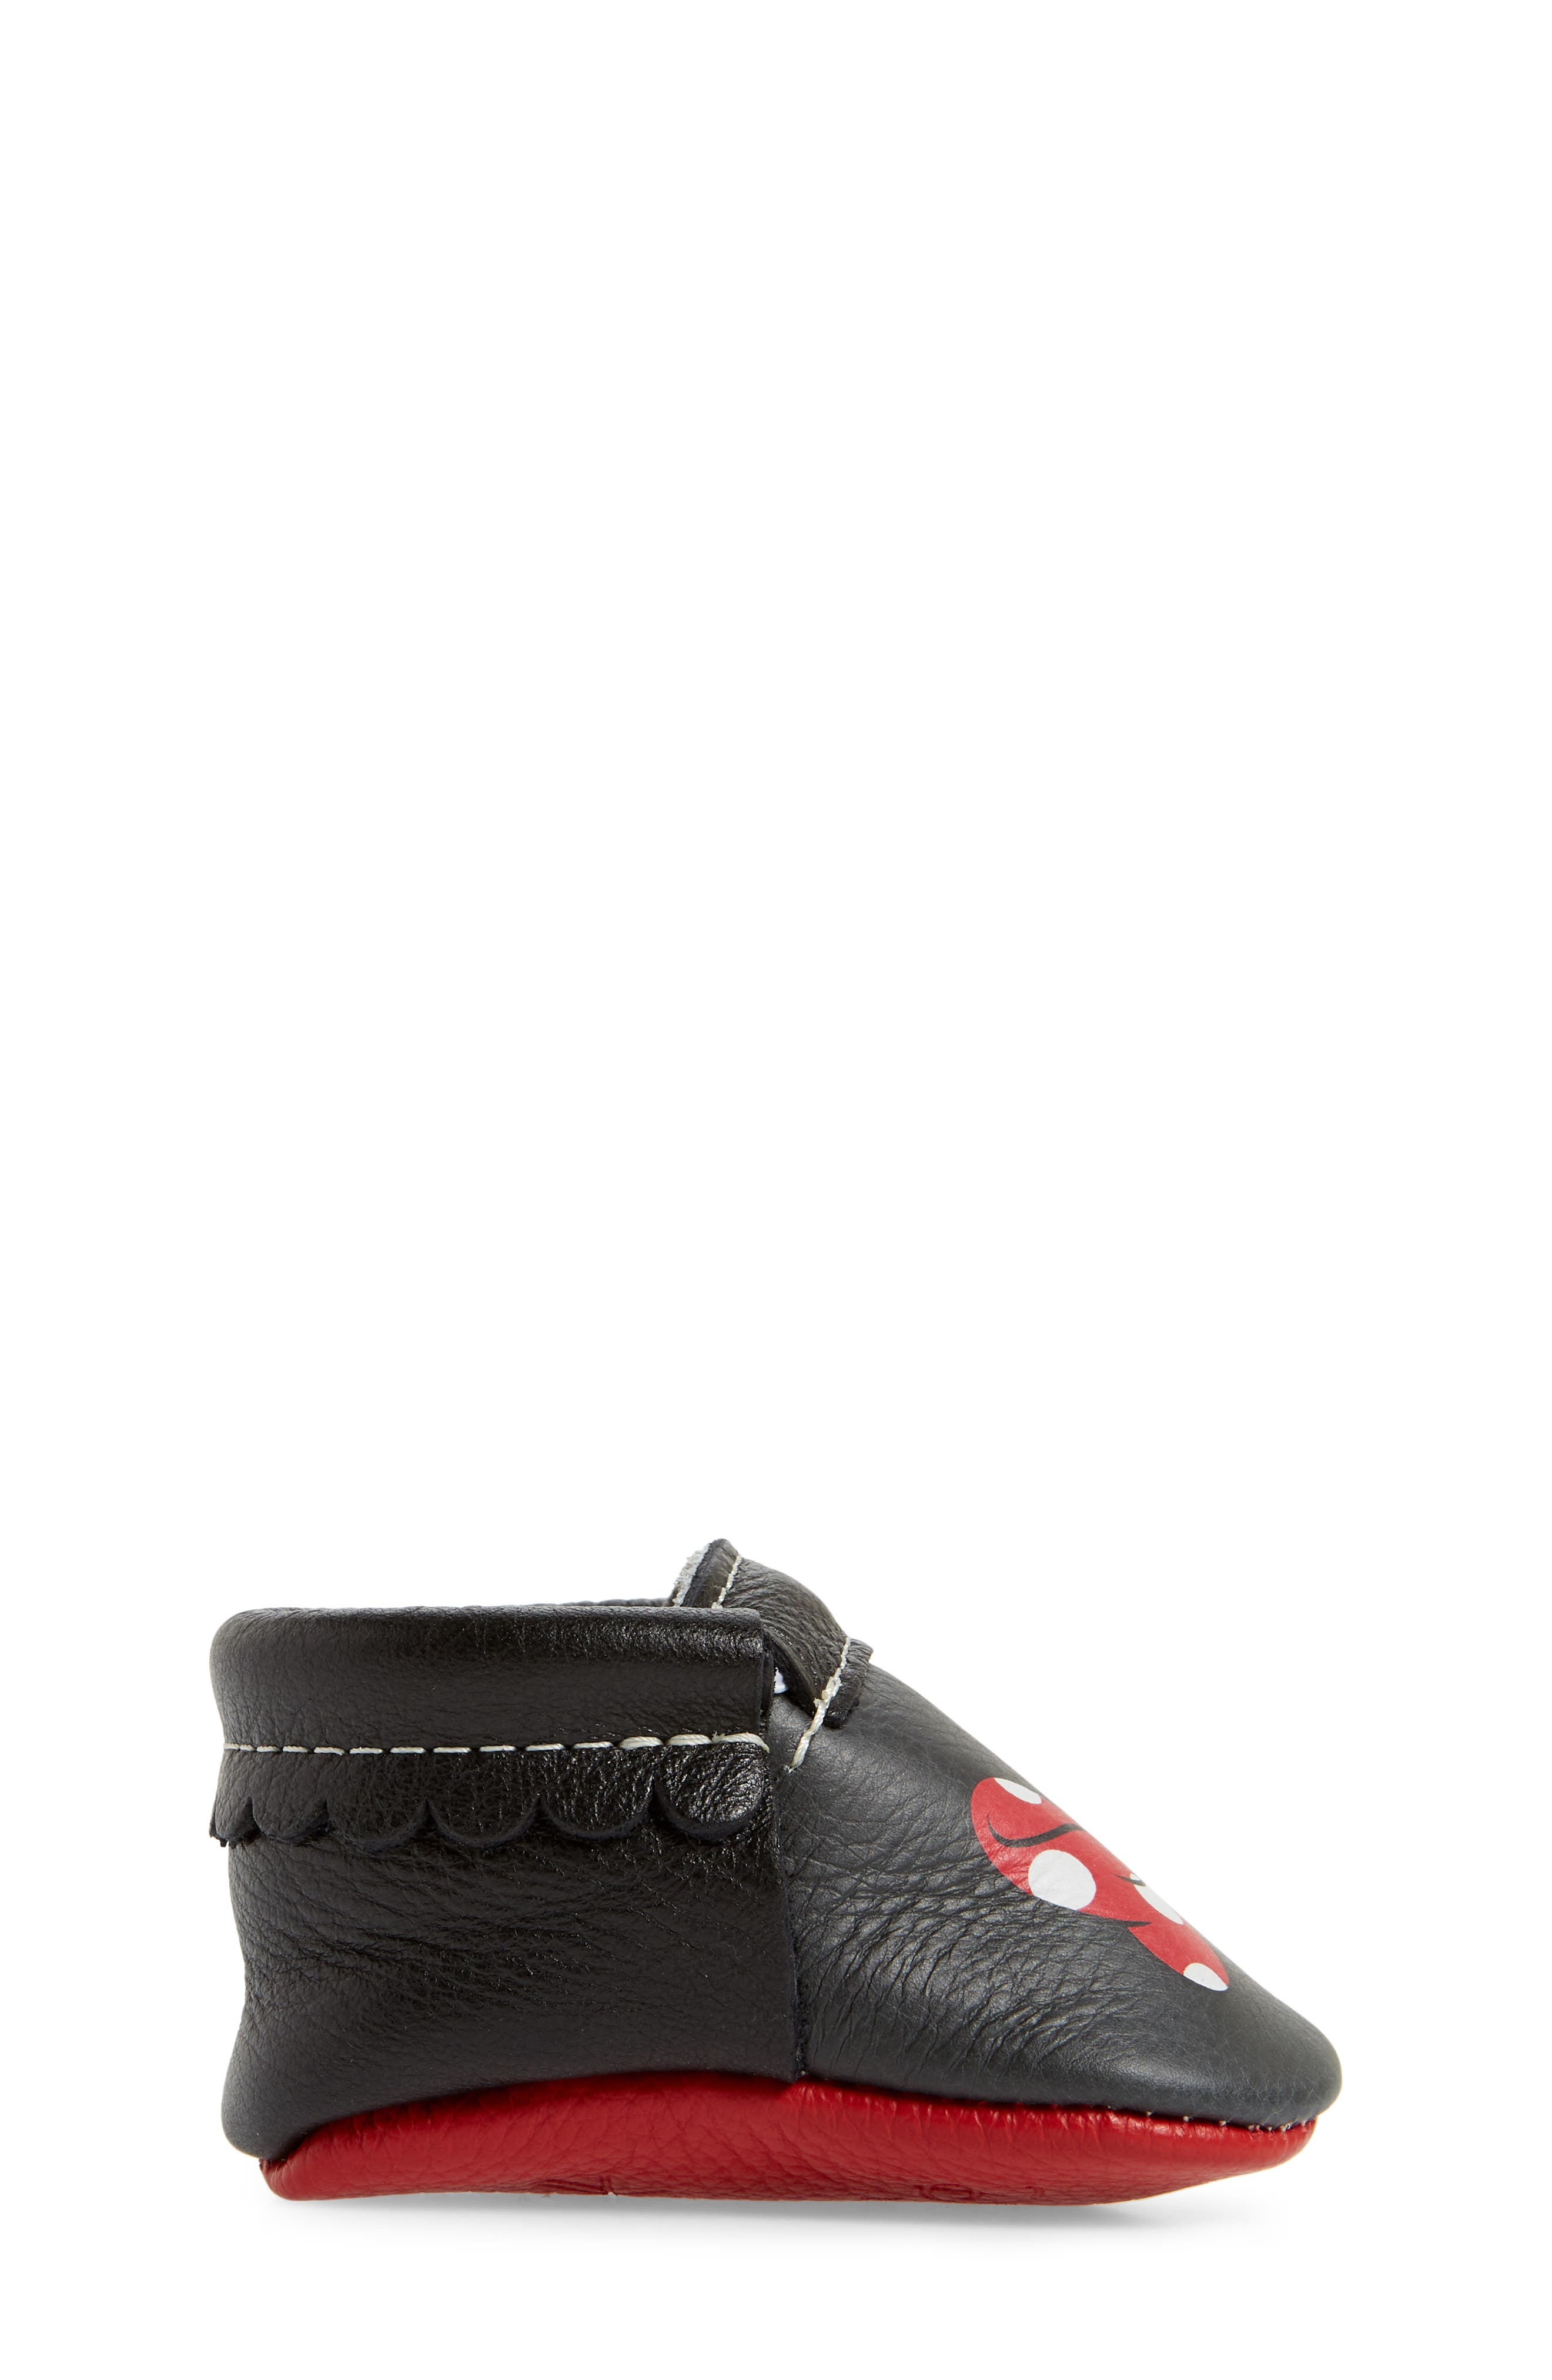 x Disney<sup>®</sup> Baby Minnie Mouse Crib Moccasin,                             Alternate thumbnail 3, color,                             Black Leather